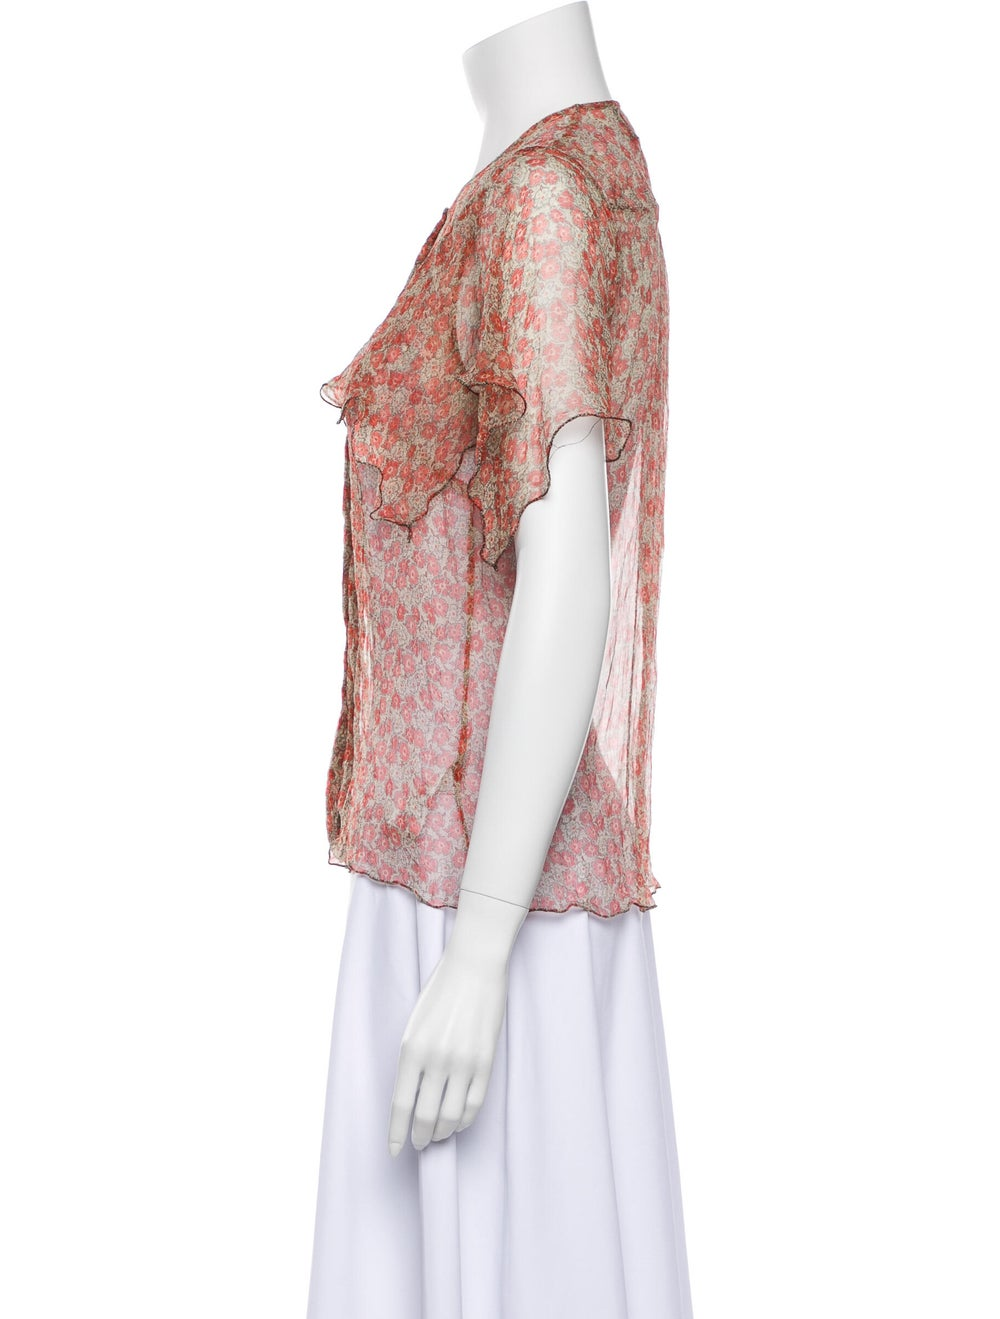 Zadig & Voltaire Silk Floral Print Button-Up Top … - image 2